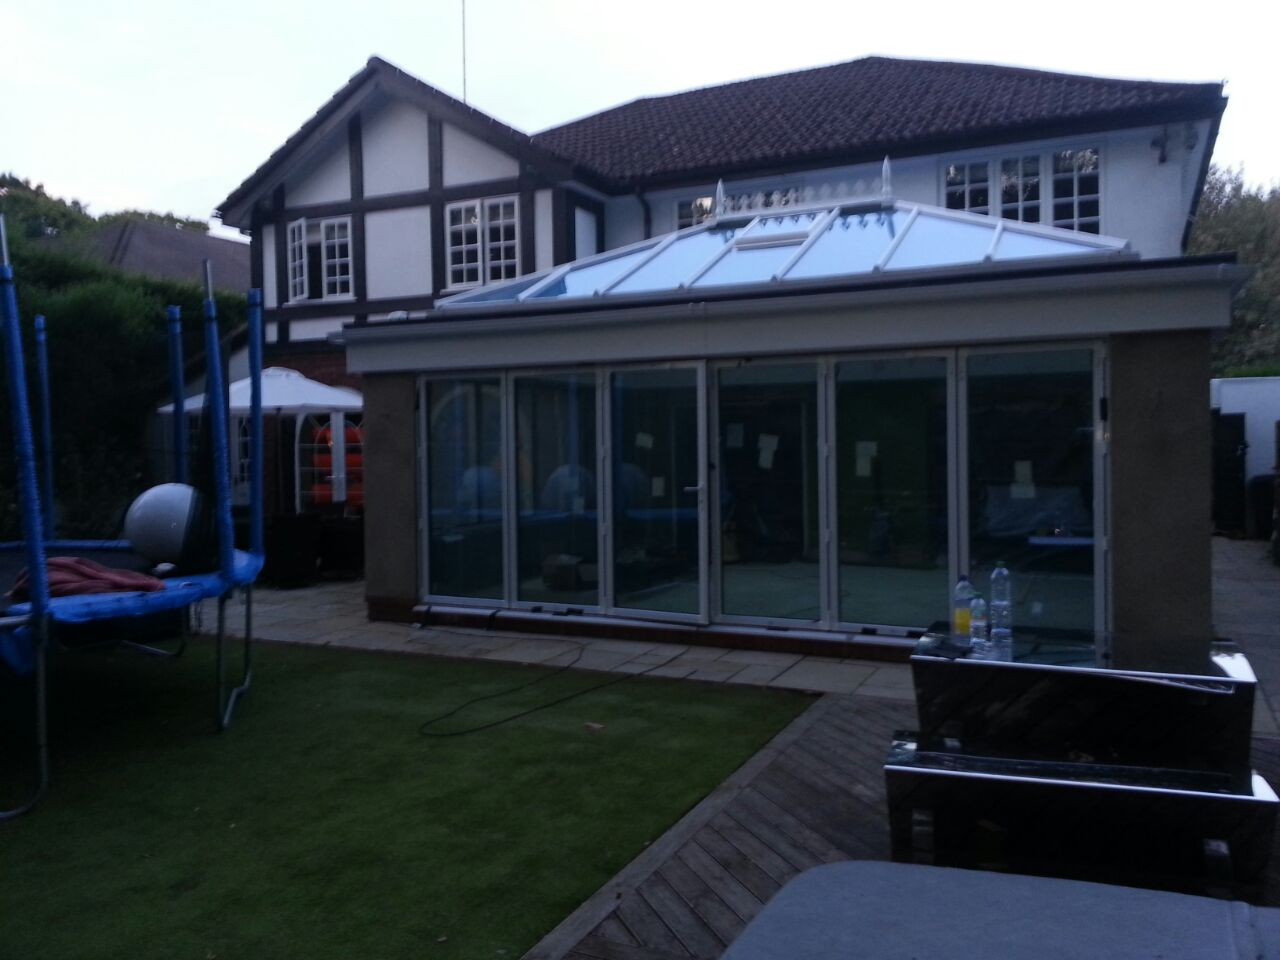 FOLDING DOORS WITH ELECTRIC PRIVACY GLASS - ON.jpg